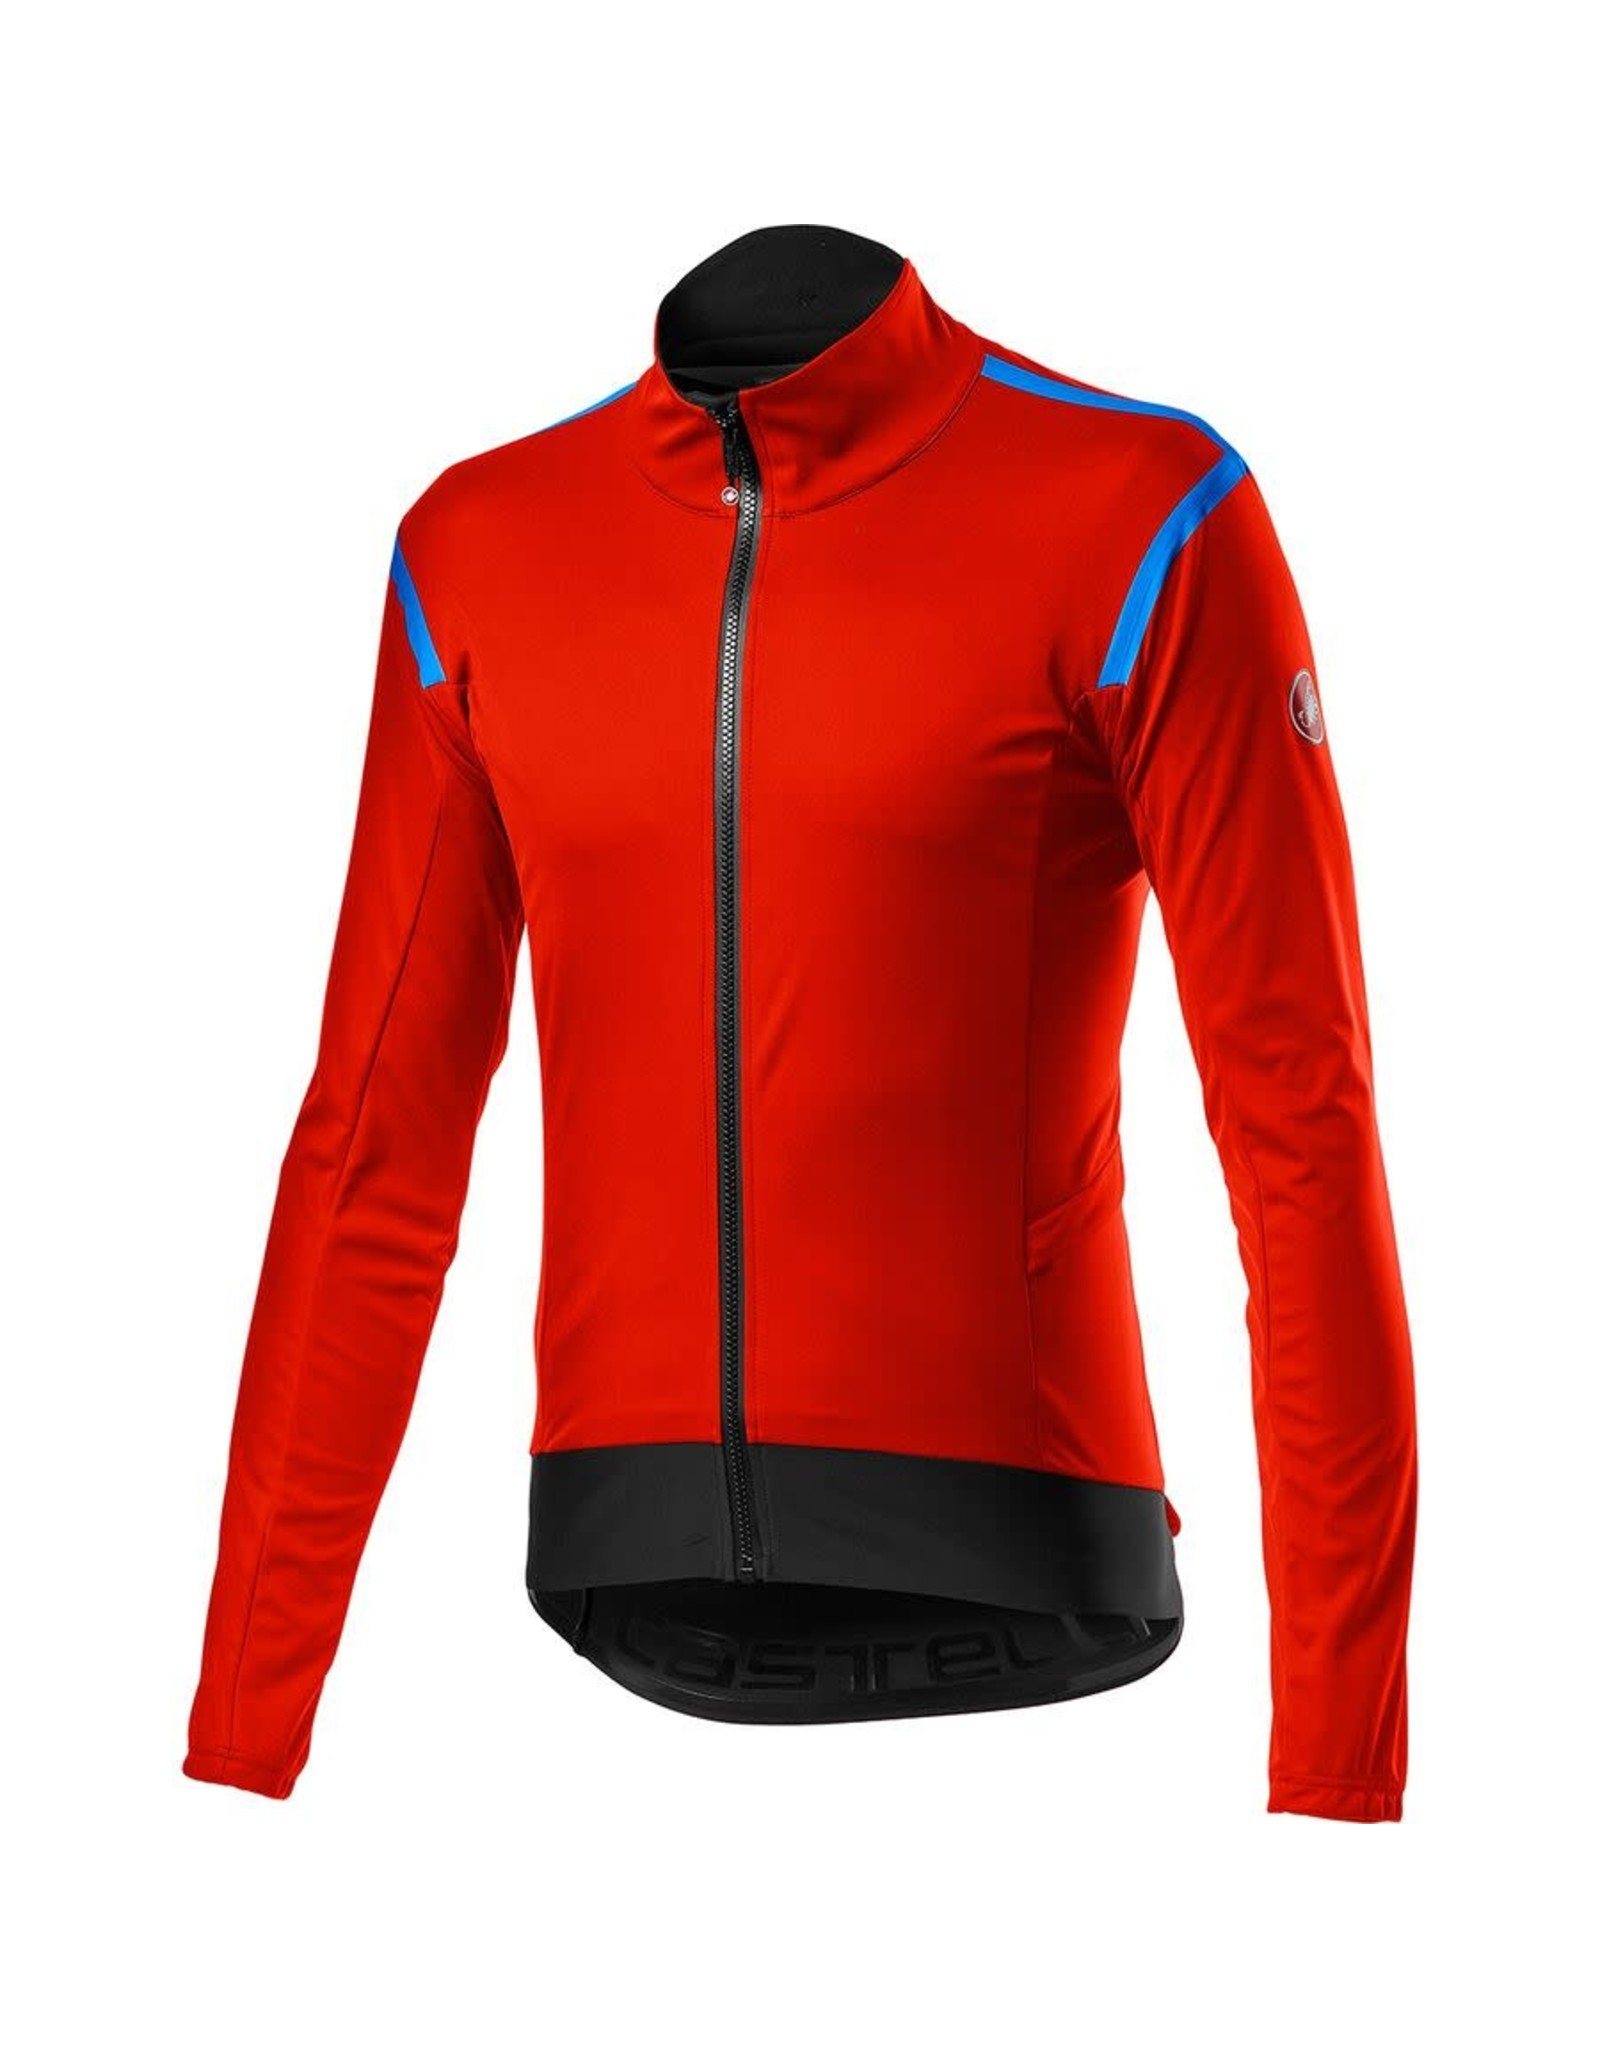 Castelli CASTELLI, Alpha ROS 2, Men's, Fiery Red, Large - Clearance